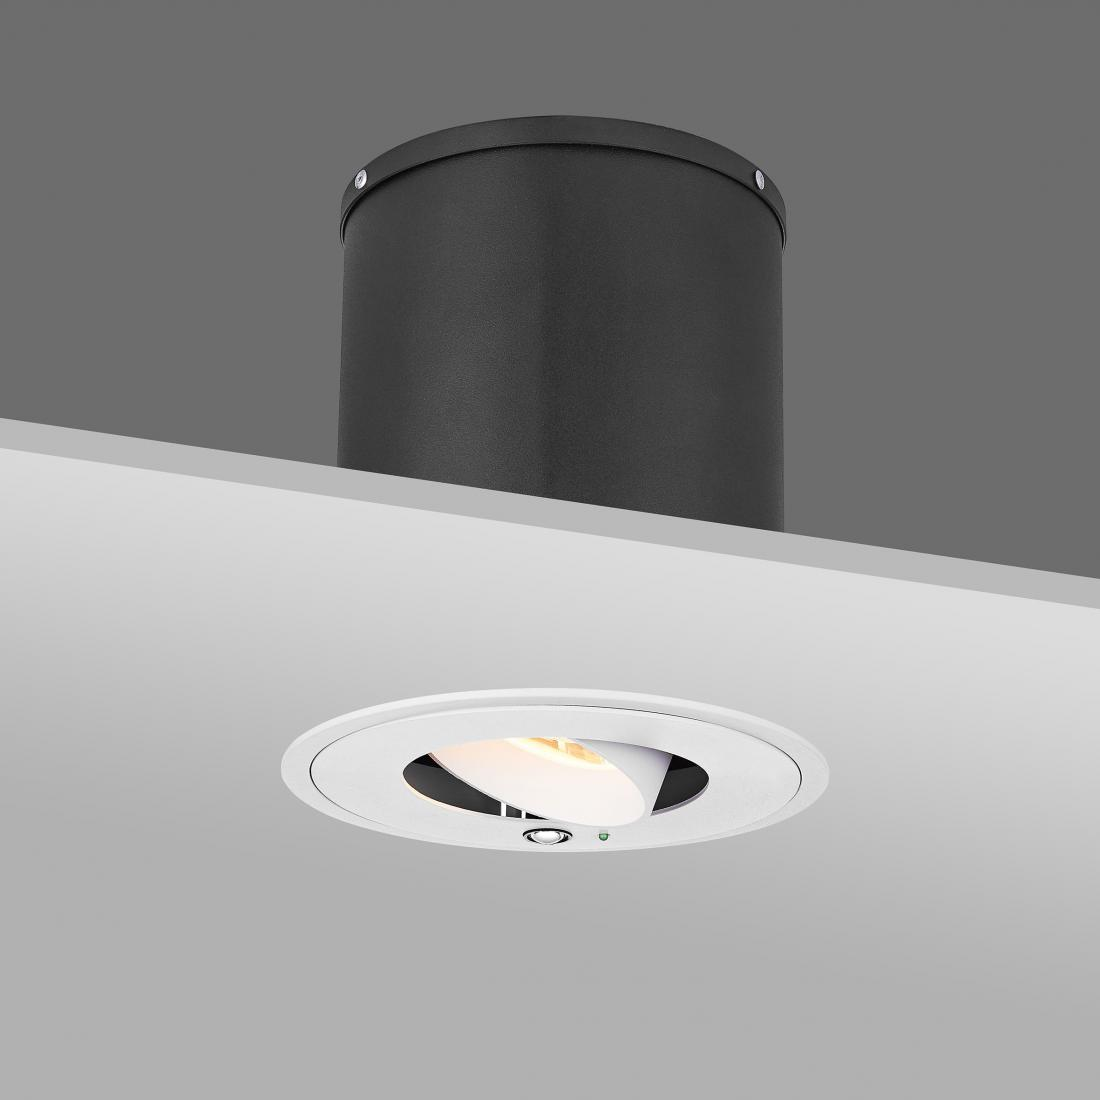 Remote Control Automatic Horizontal-Rotatable&Vertical-Tiltable&CCT-Changeable 30W LED Recessed Downlight